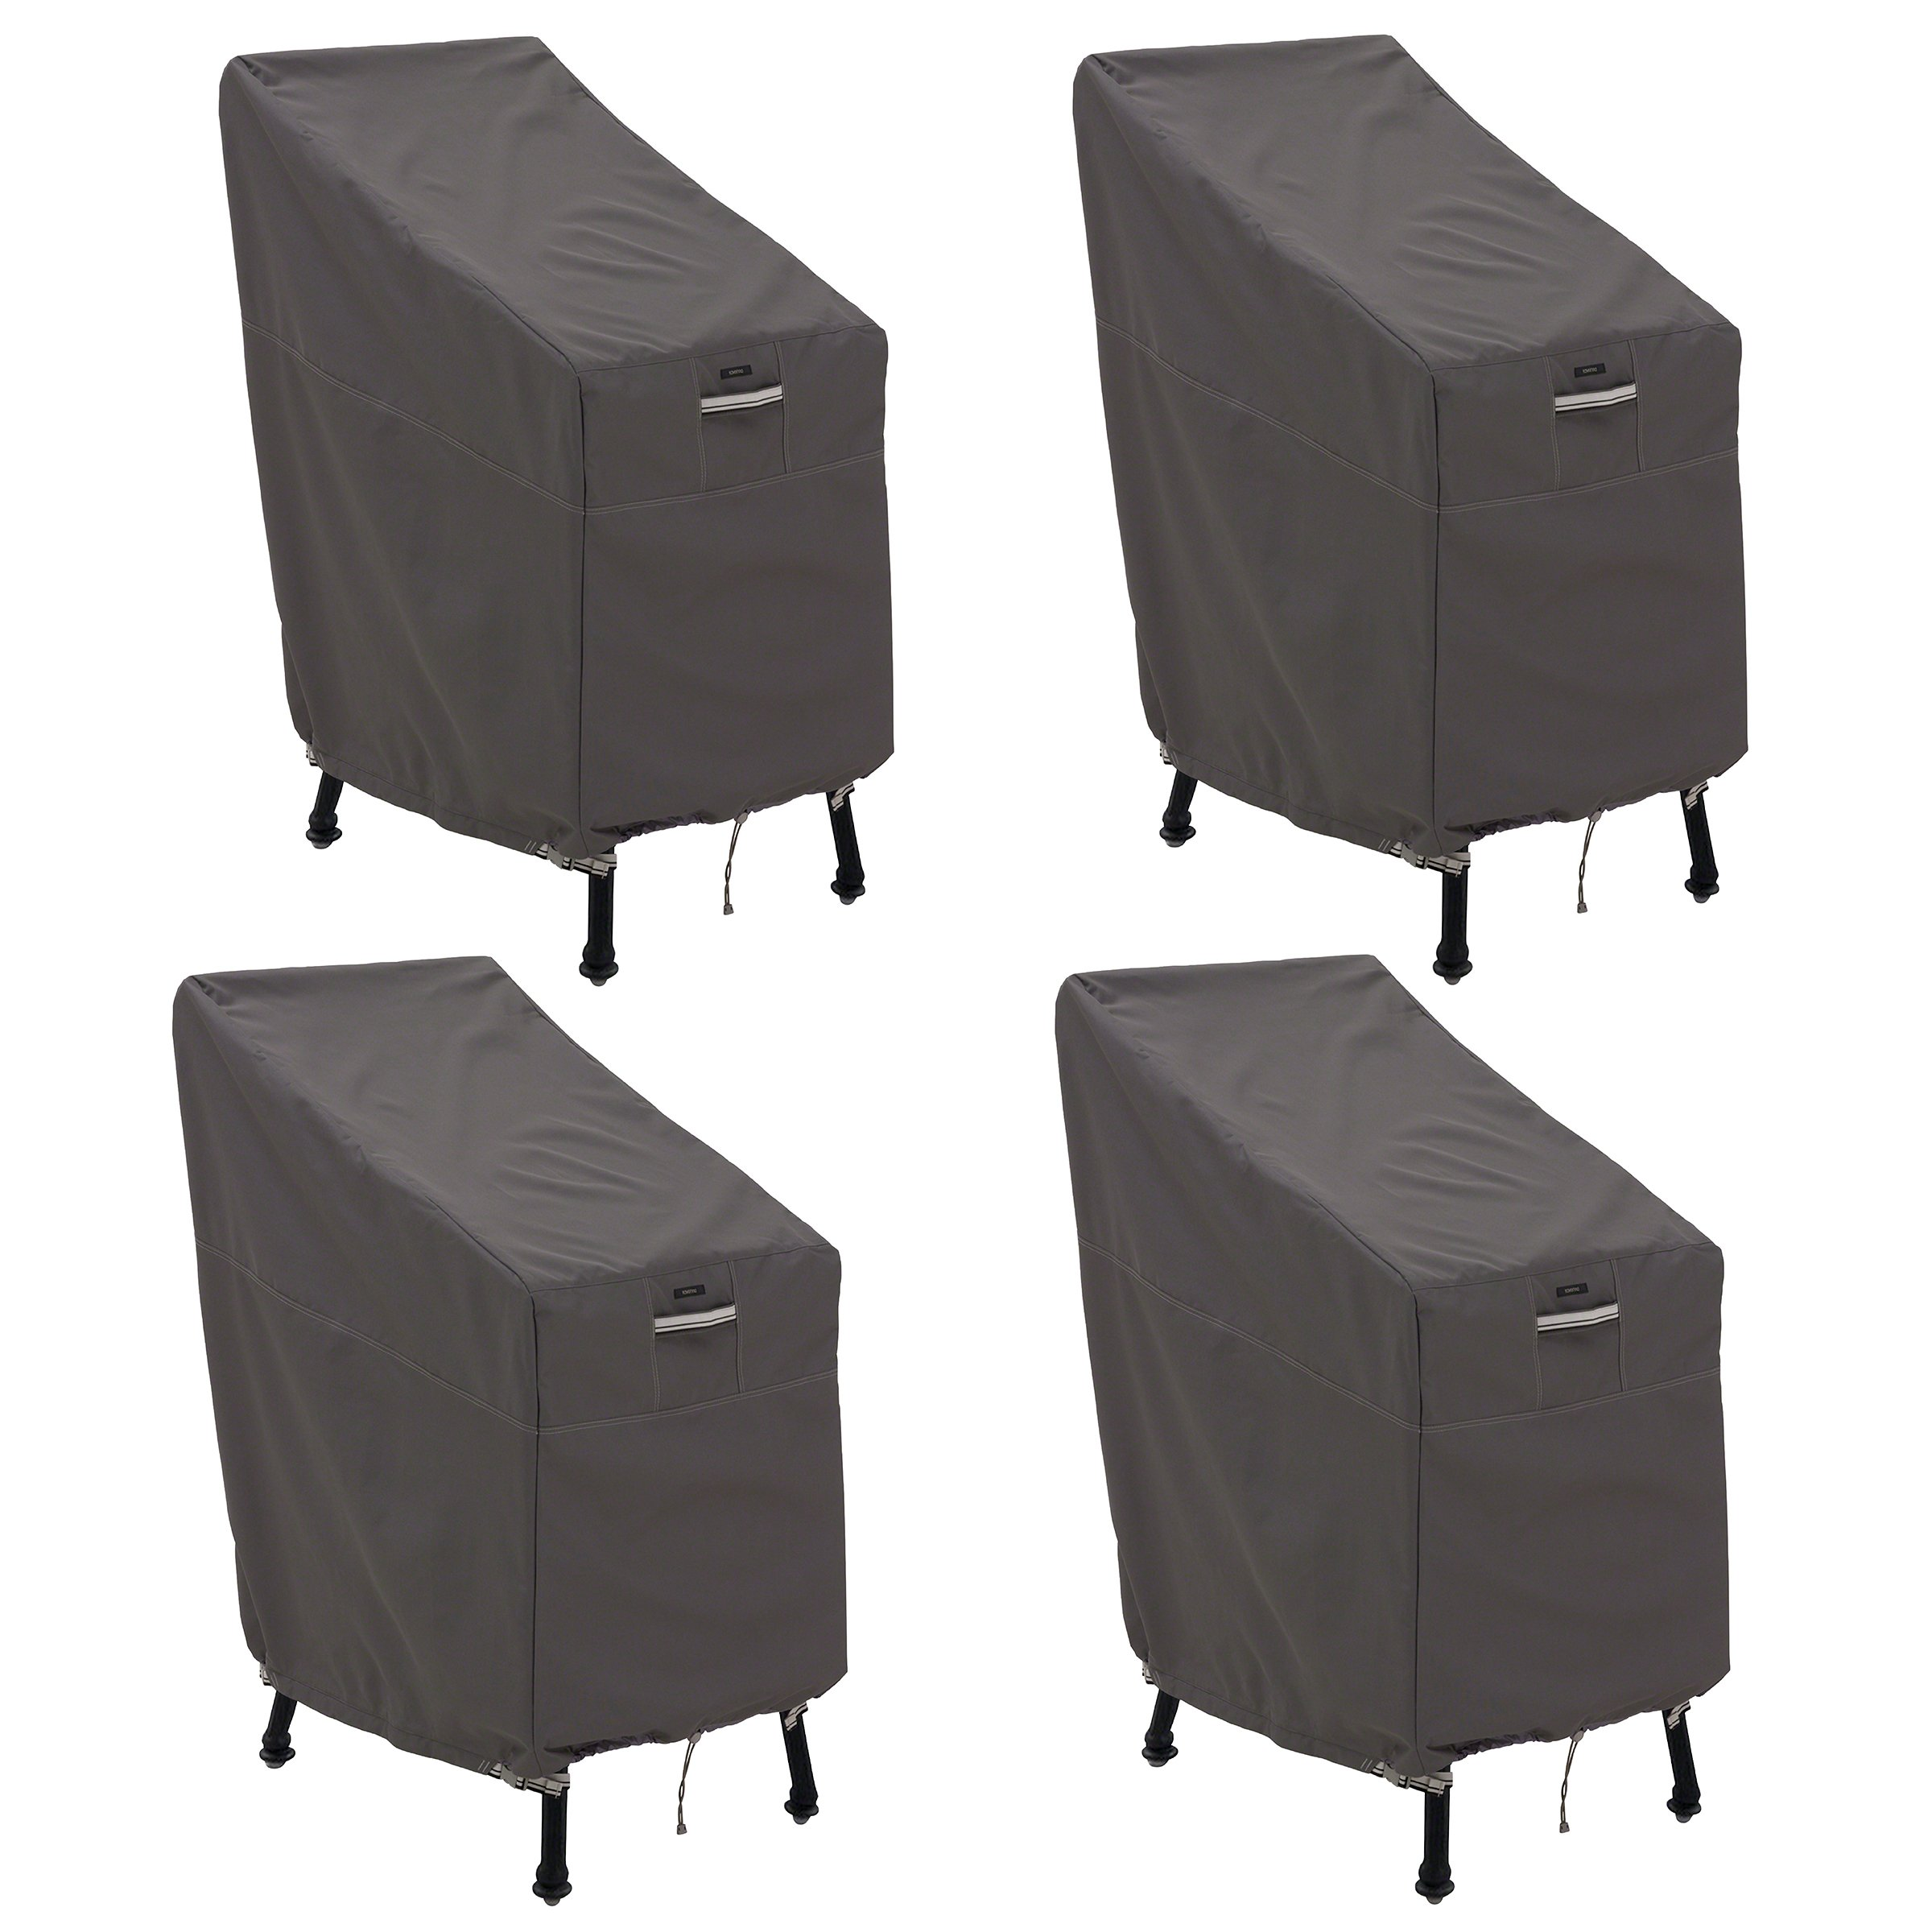 Classic Accessories 55-920-015103-4PK Ravenna Patio Bar Chair/Stool Cover, 4-Pack